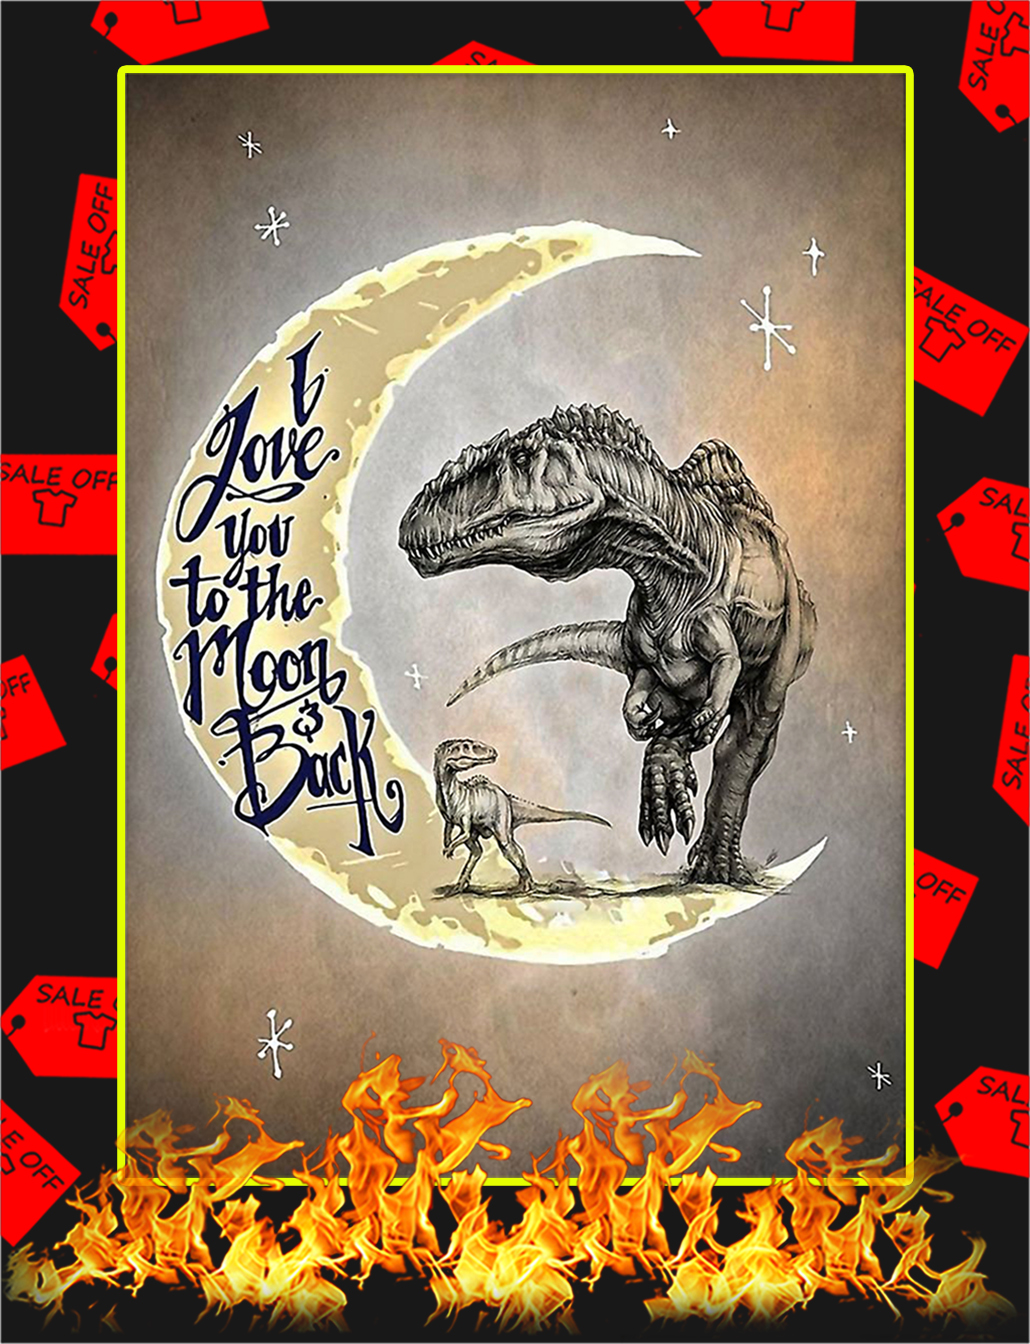 Dinosaurs I Love You To The Moon And Back Poster - A2